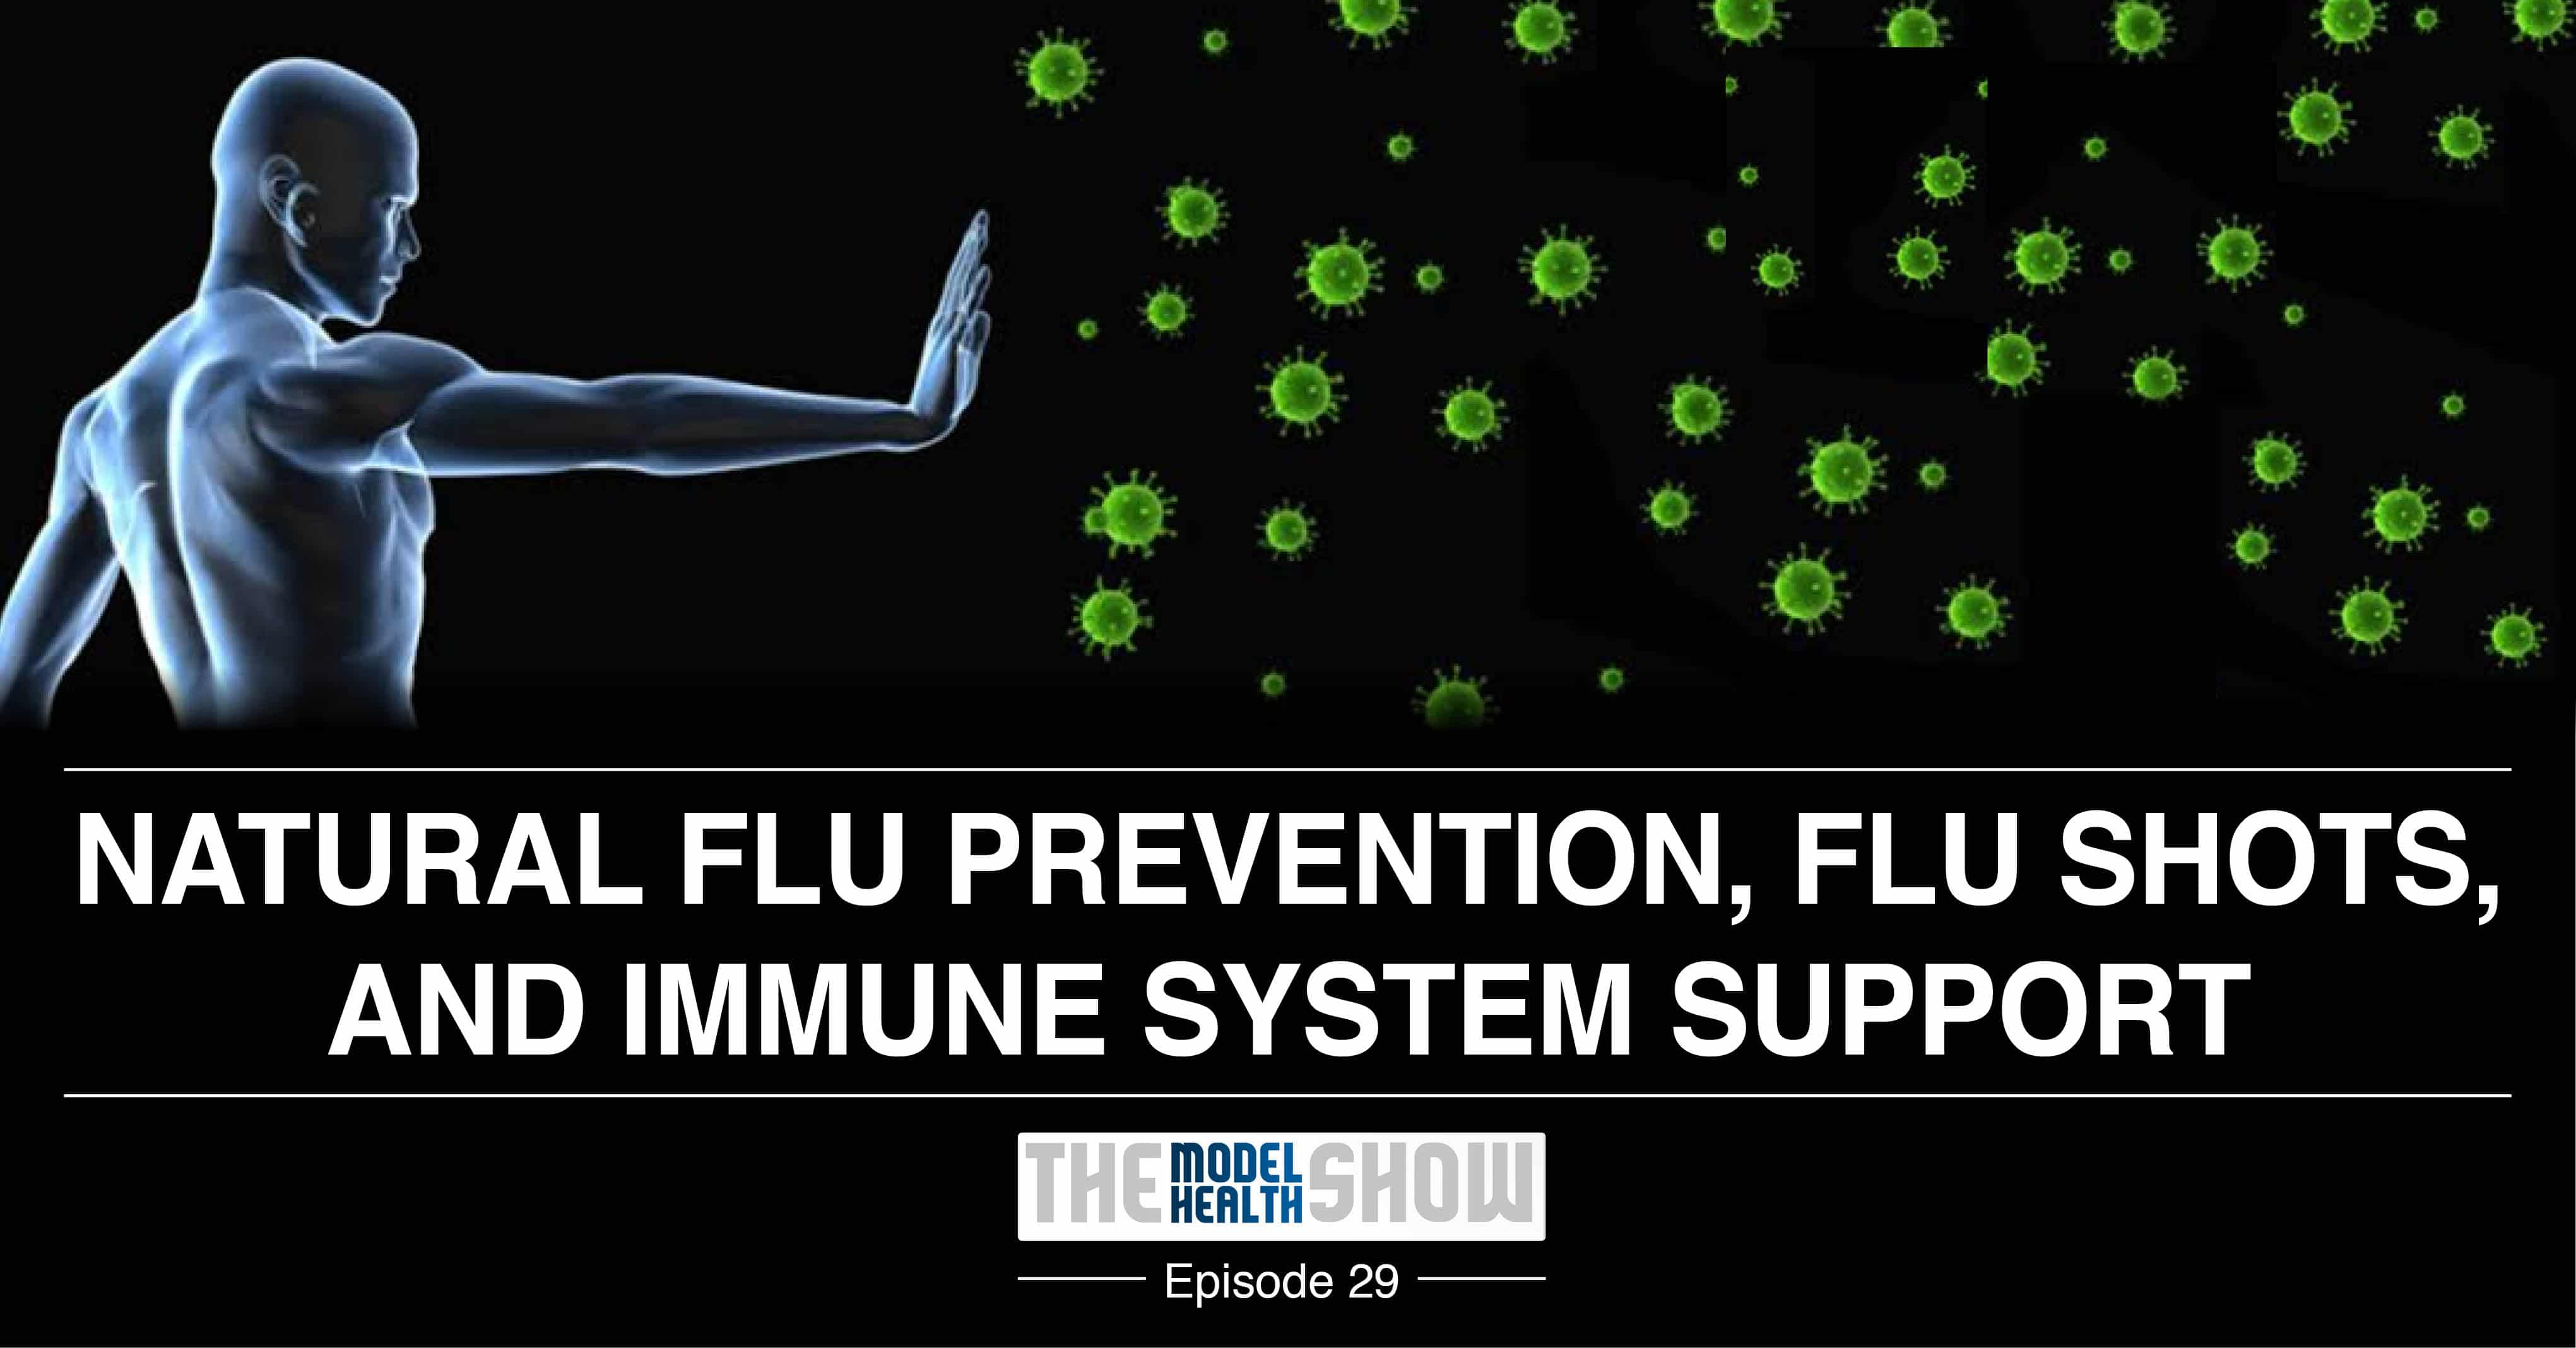 Natural Flu Prevention, Flu Shots, And Immune System Support